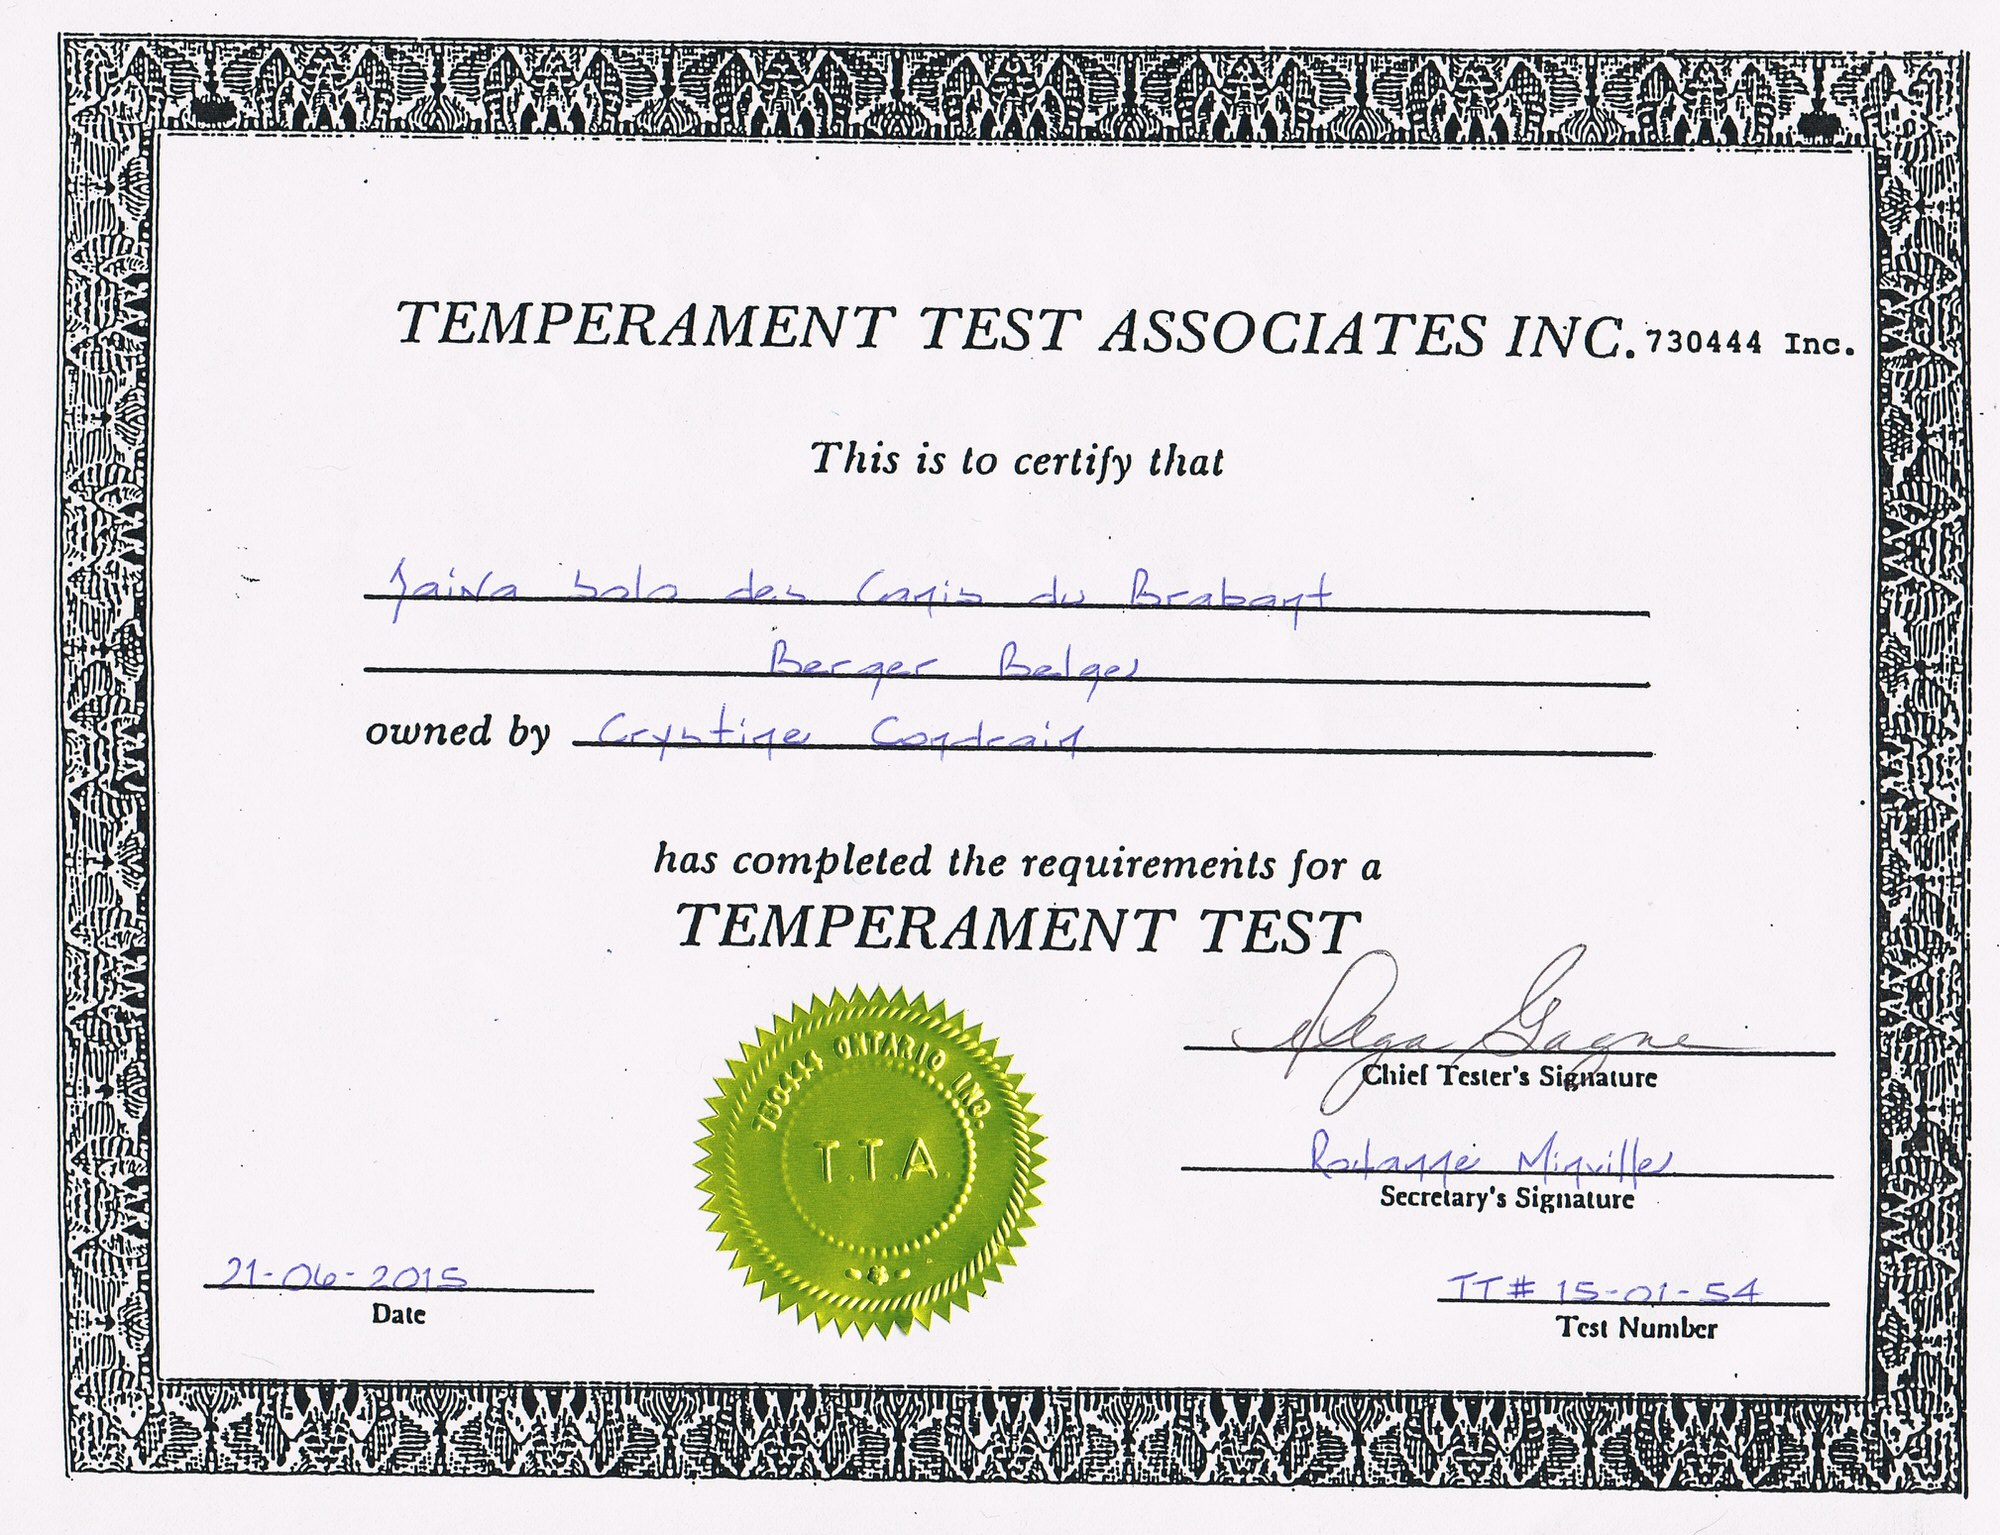 Temperament test